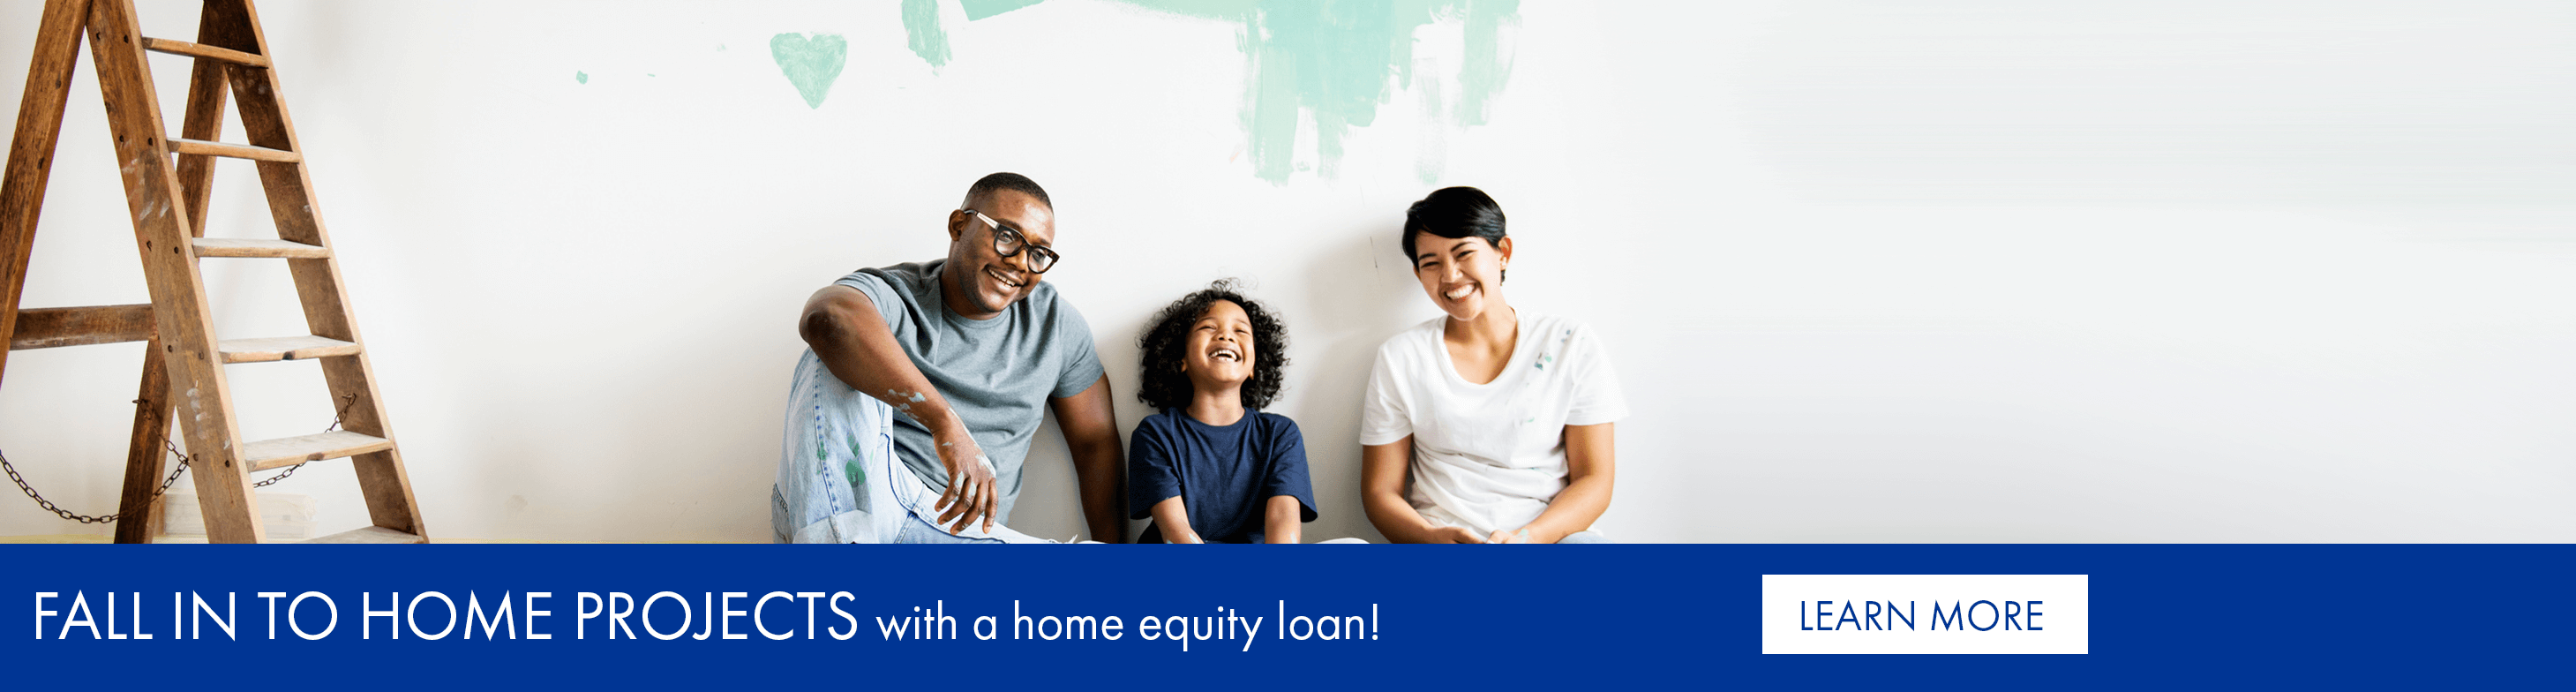 Fall in to home projects with a home equity loan!